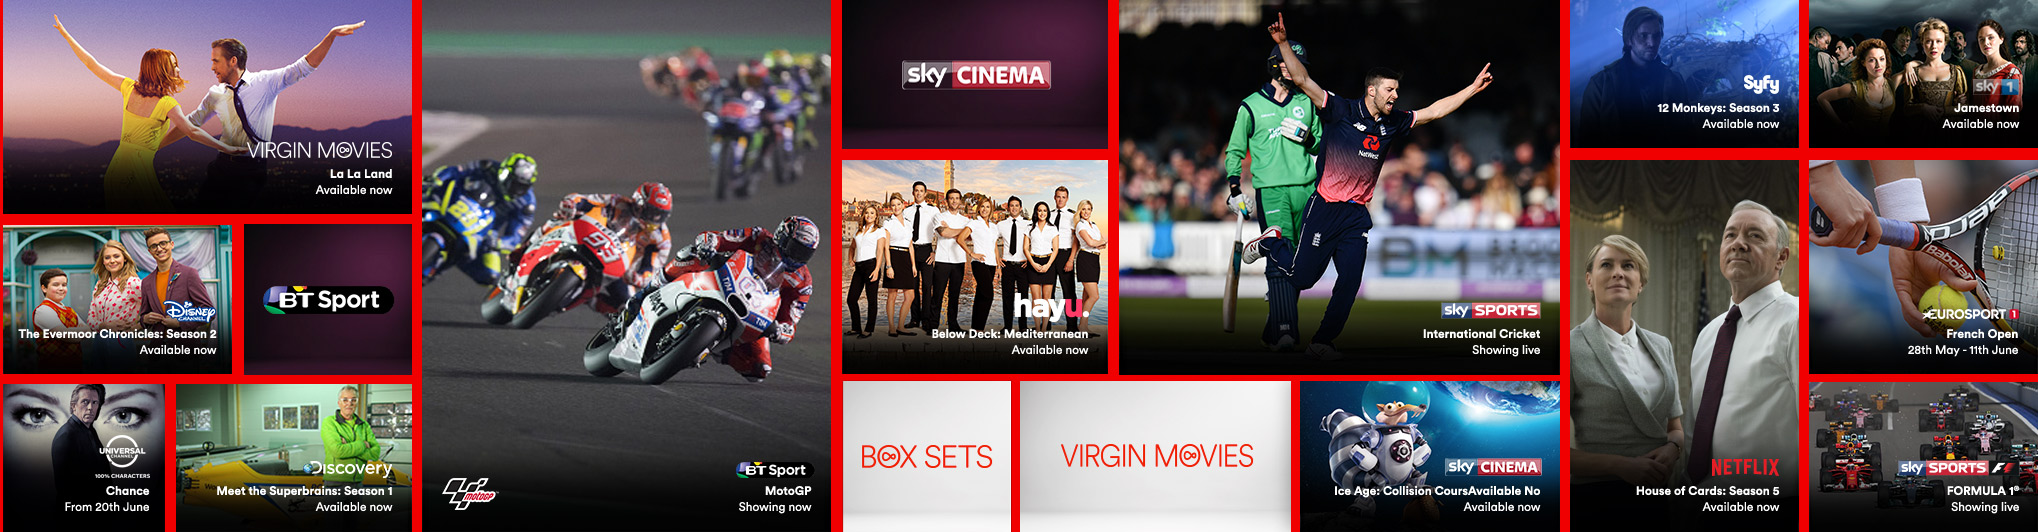 Gallery showing the live TV, catch up and on demand shows available with Big Kahuna Sports